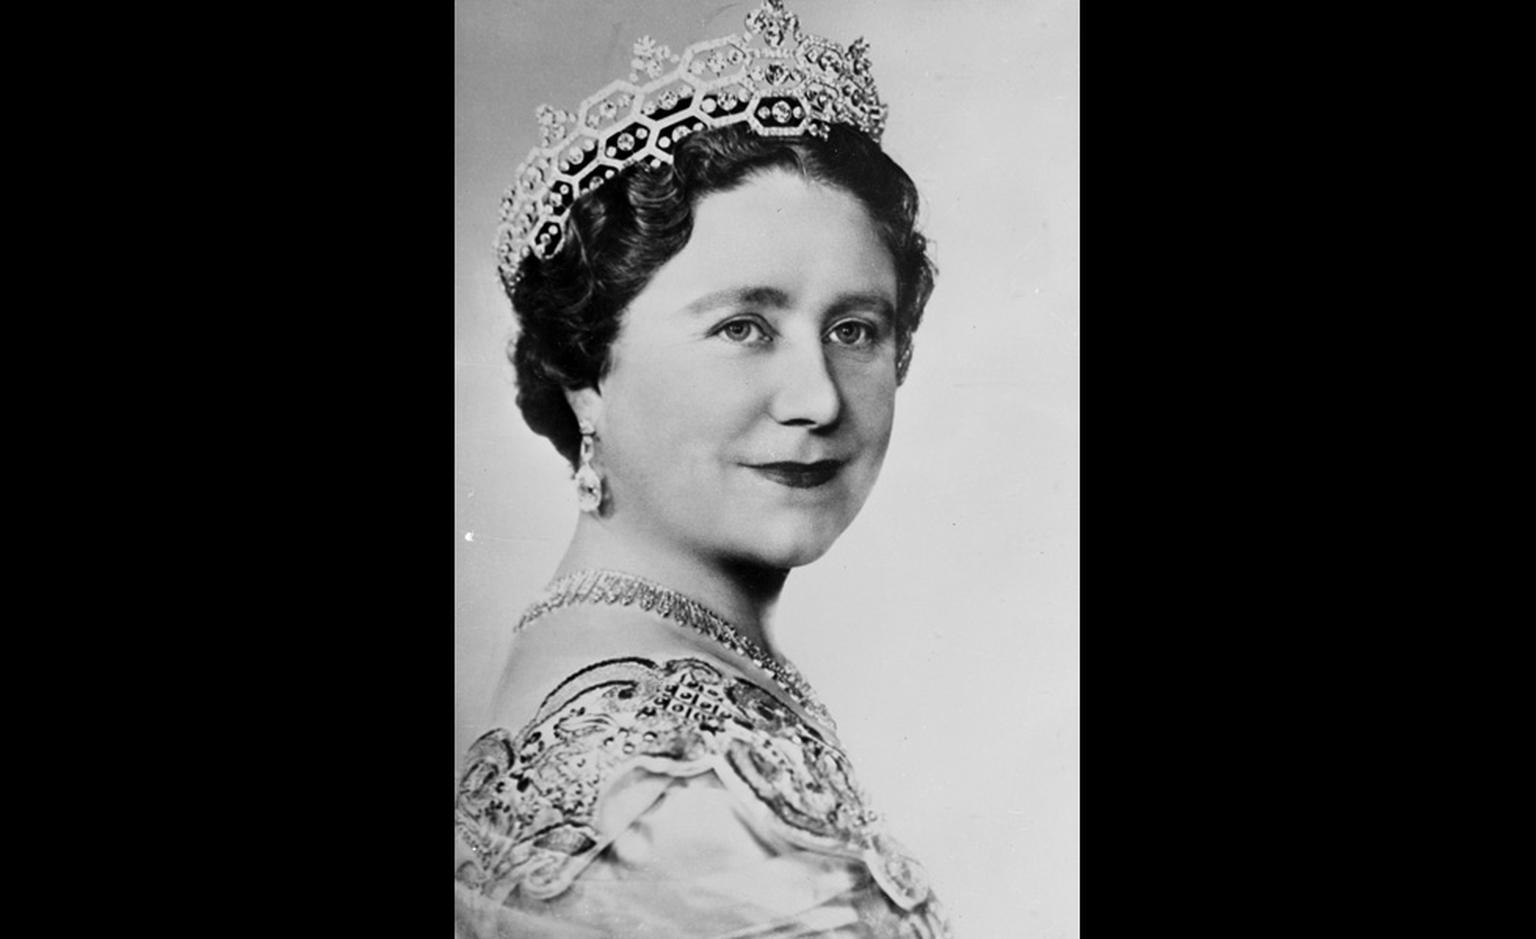 Queen Elizabeth, the Queen Mother wearing her Boucheron 'honeycomb' tiara that was given to her by Lady Greville in 1942 and subsequently adapted. Copyright Corbis